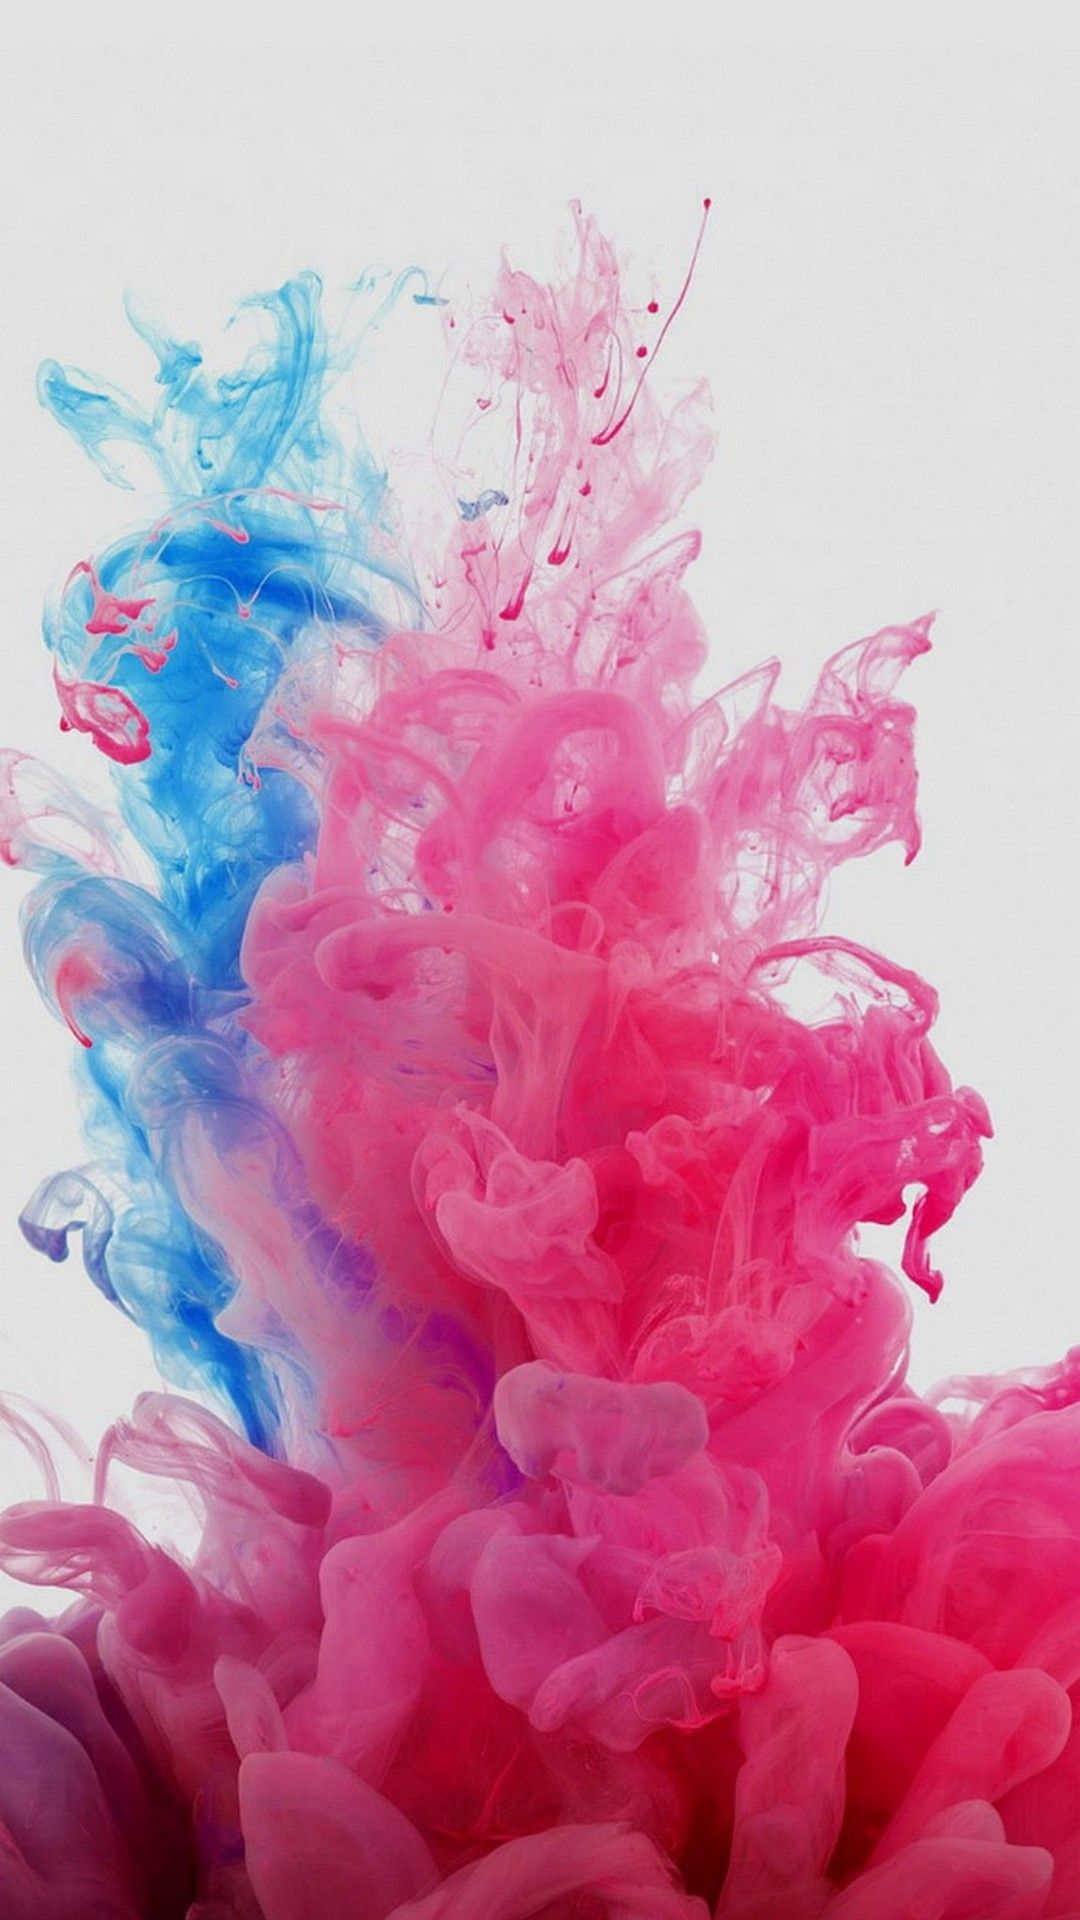 Smokey Pink And Blue Wallpapers - Wallpaper Cave